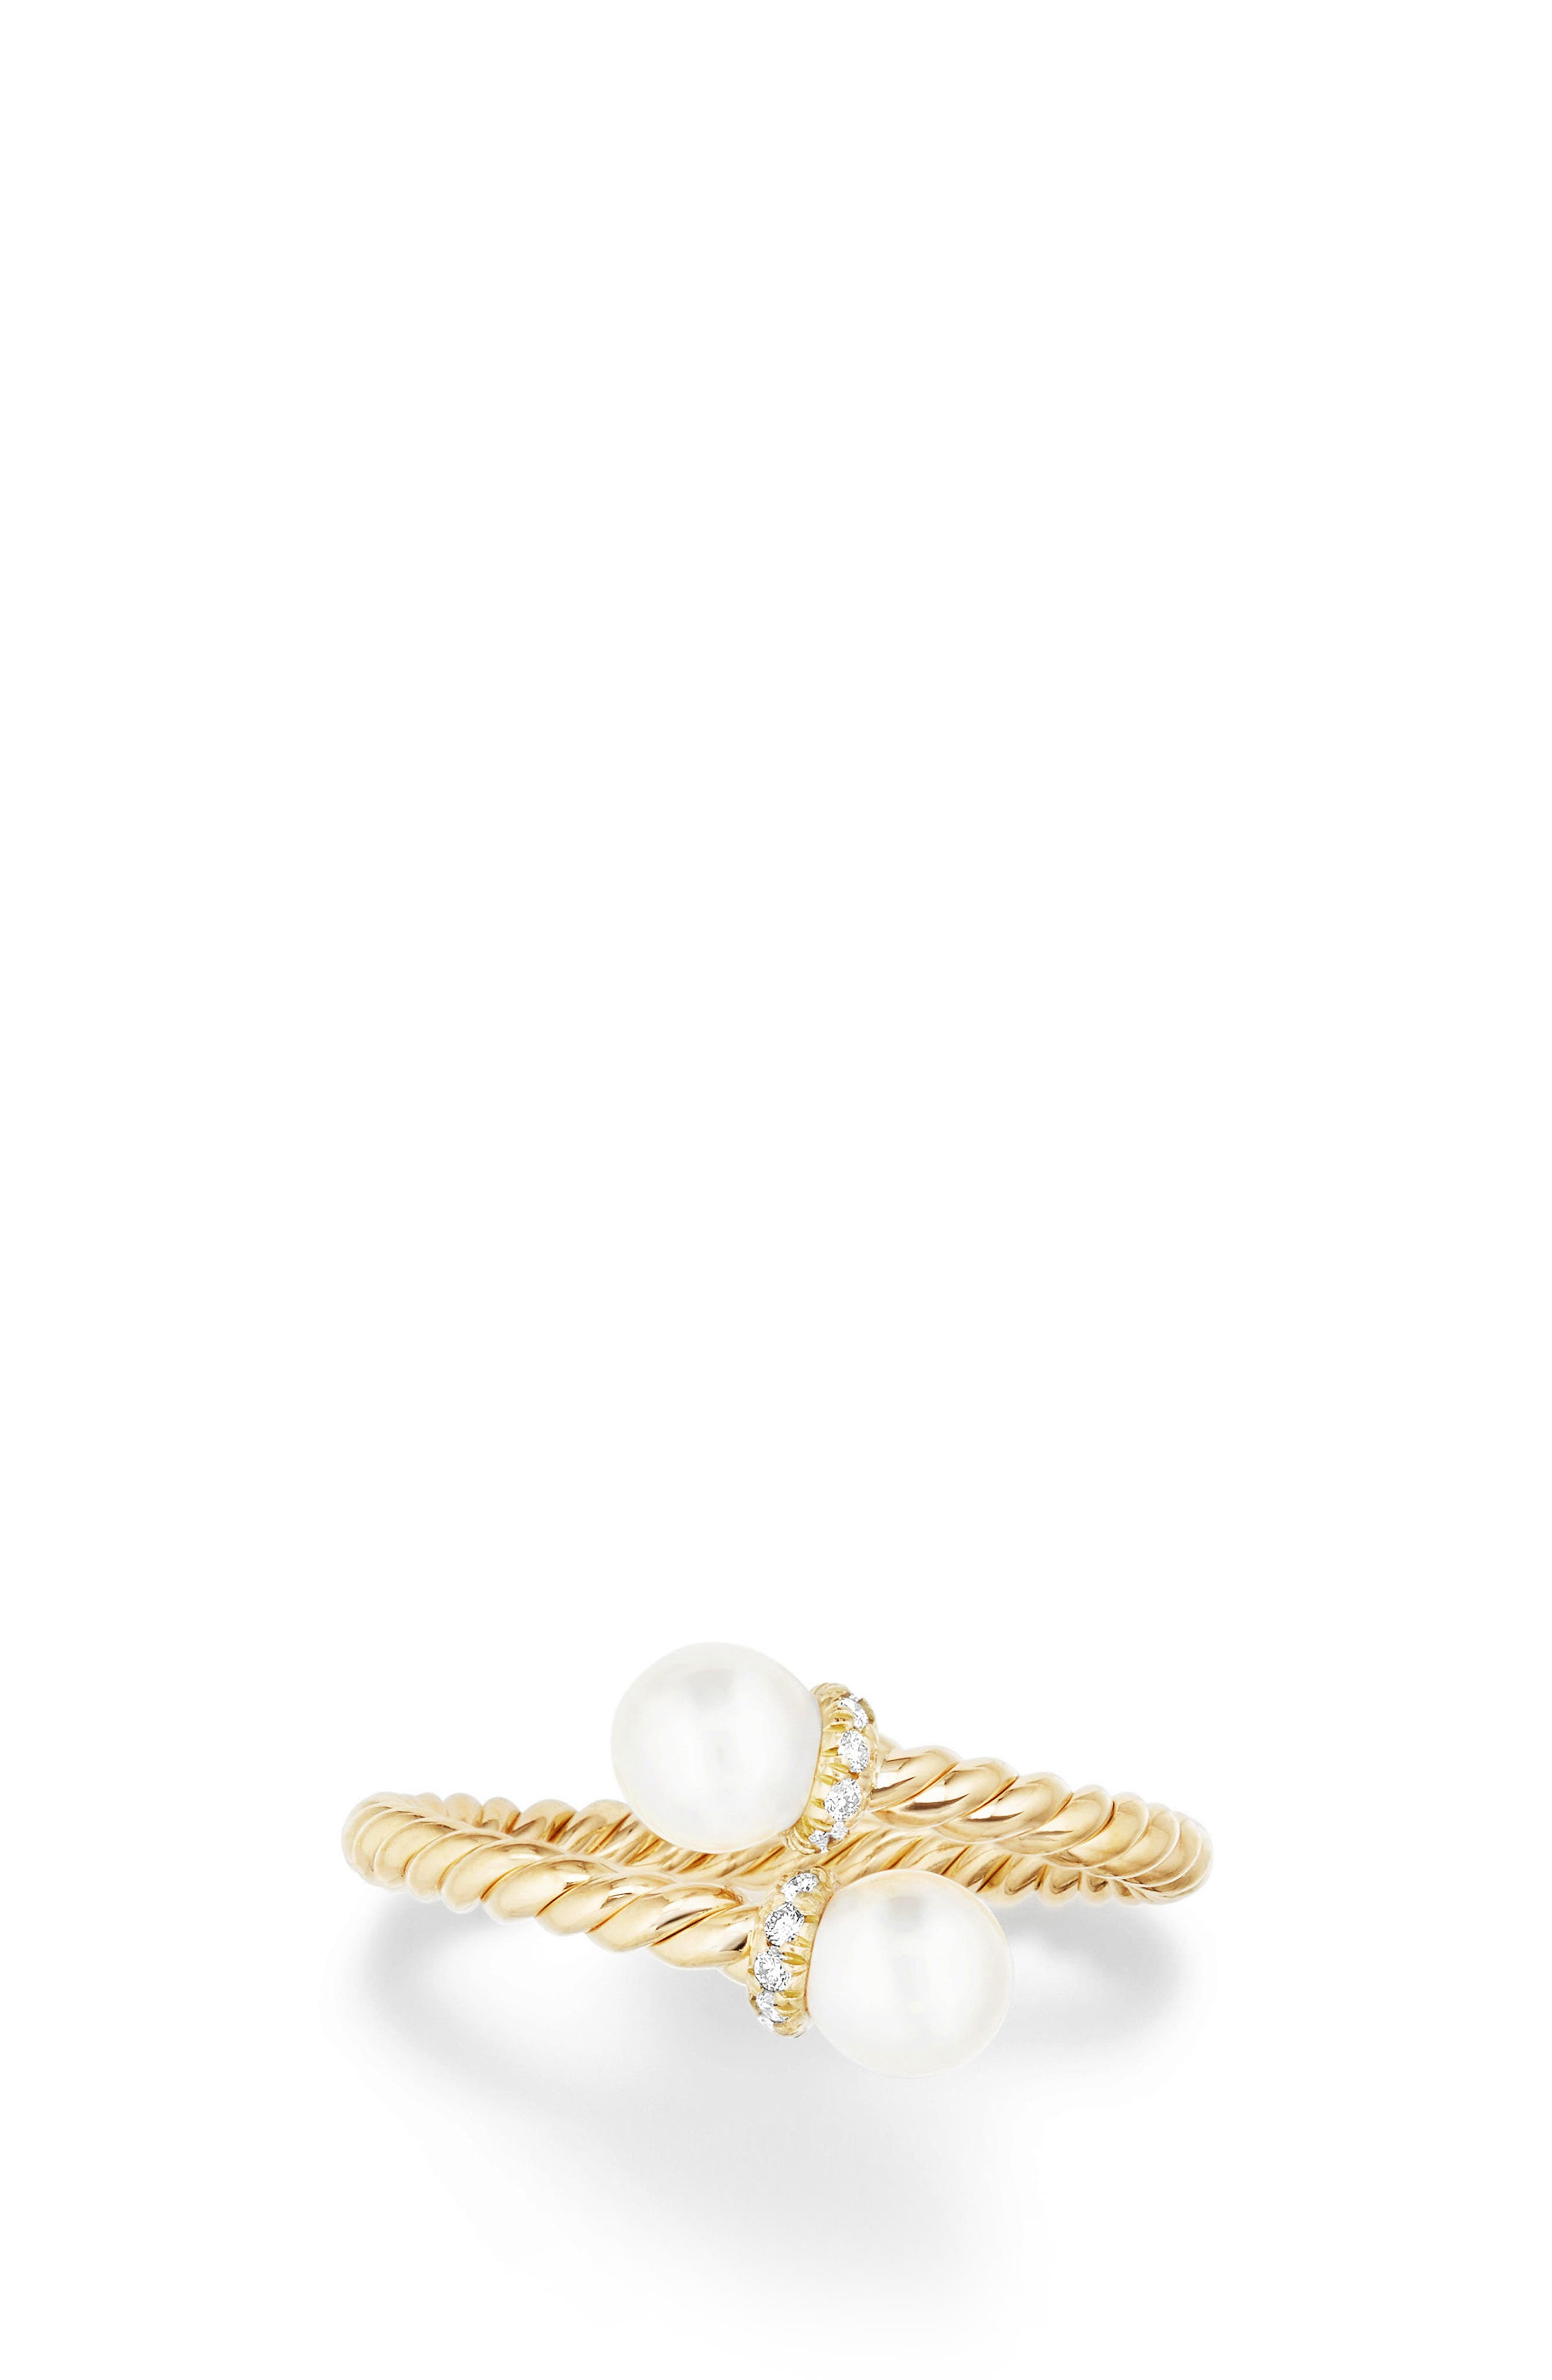 Solari Bypass Ring with Pearls & Diamonds in 18K Gold,                         Main,                         color, Yellow Gold/ Diamond/ Pearl